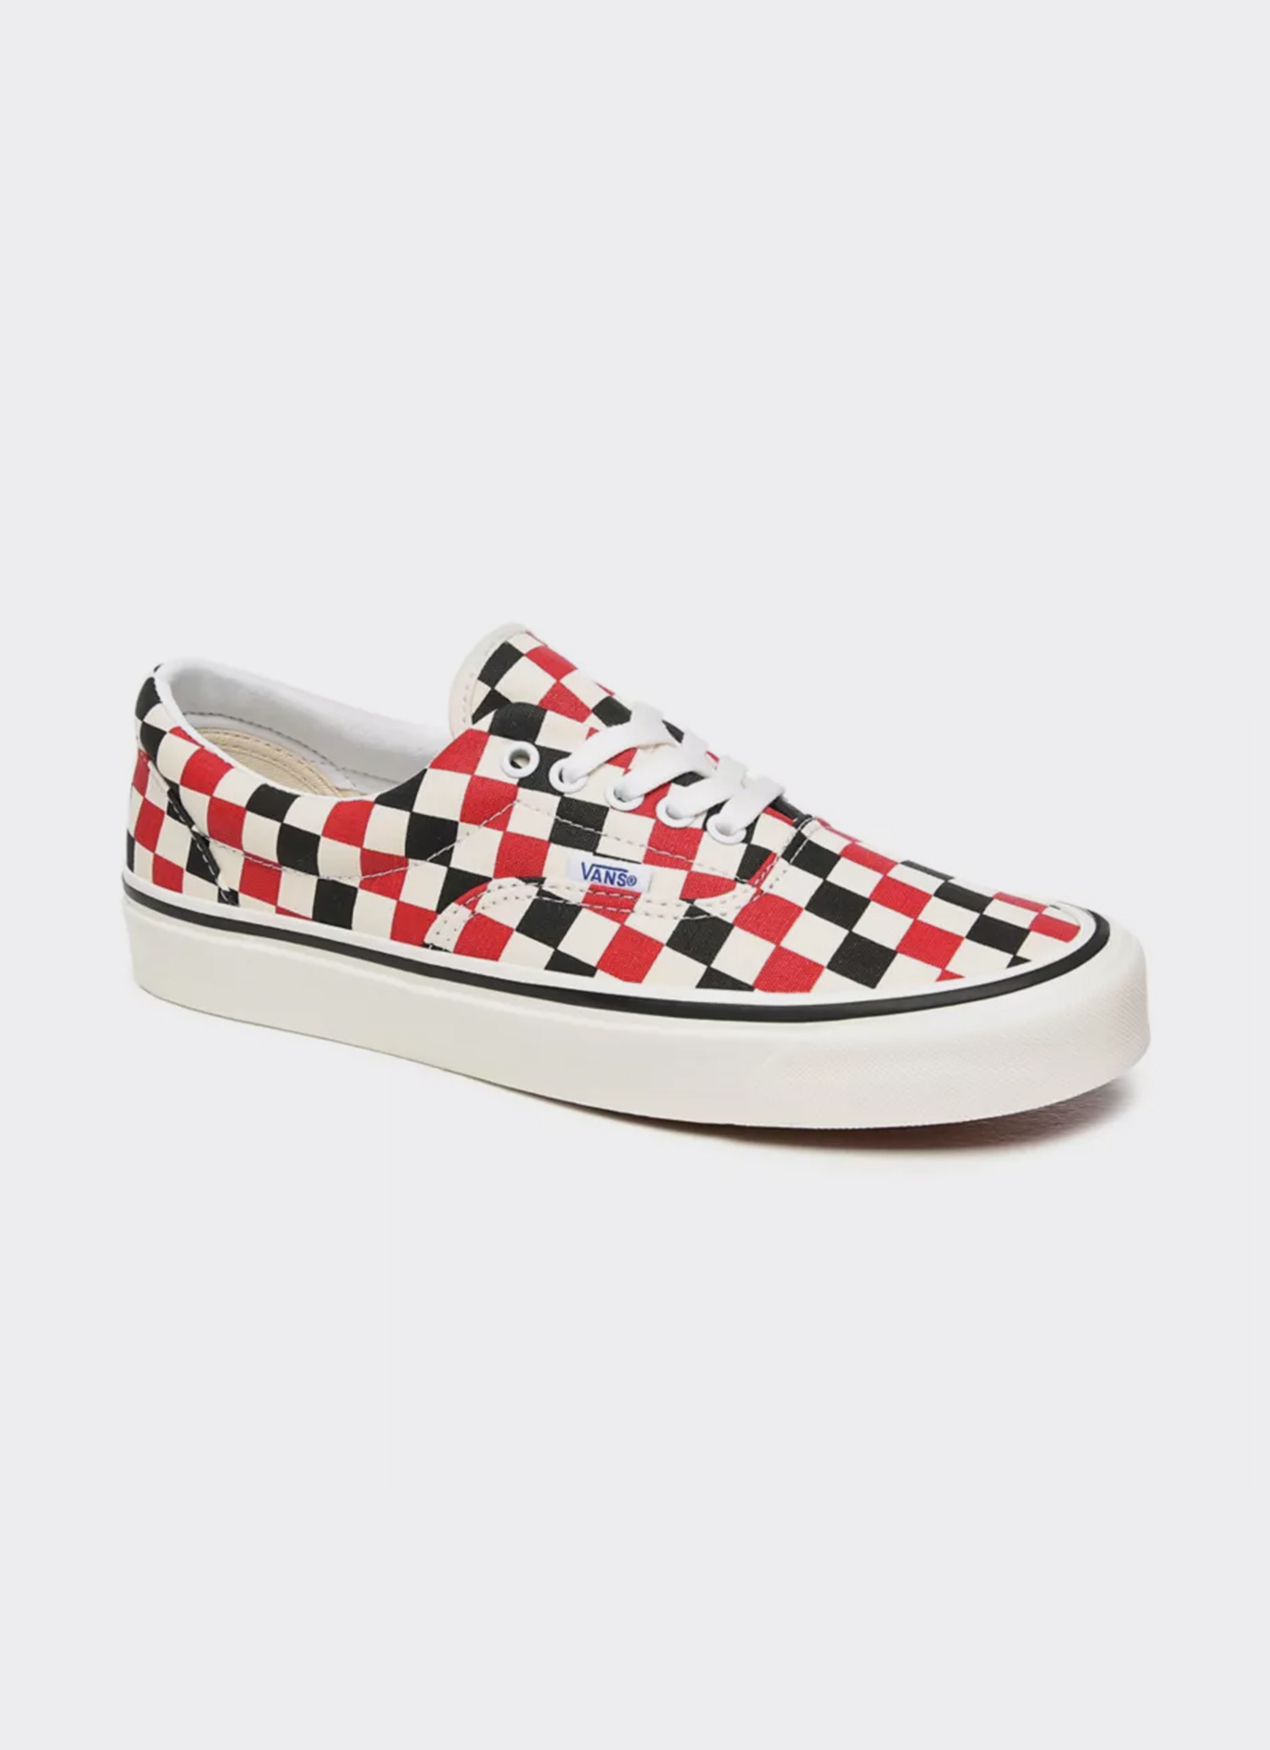 Vans Era 95 DX - Red Check